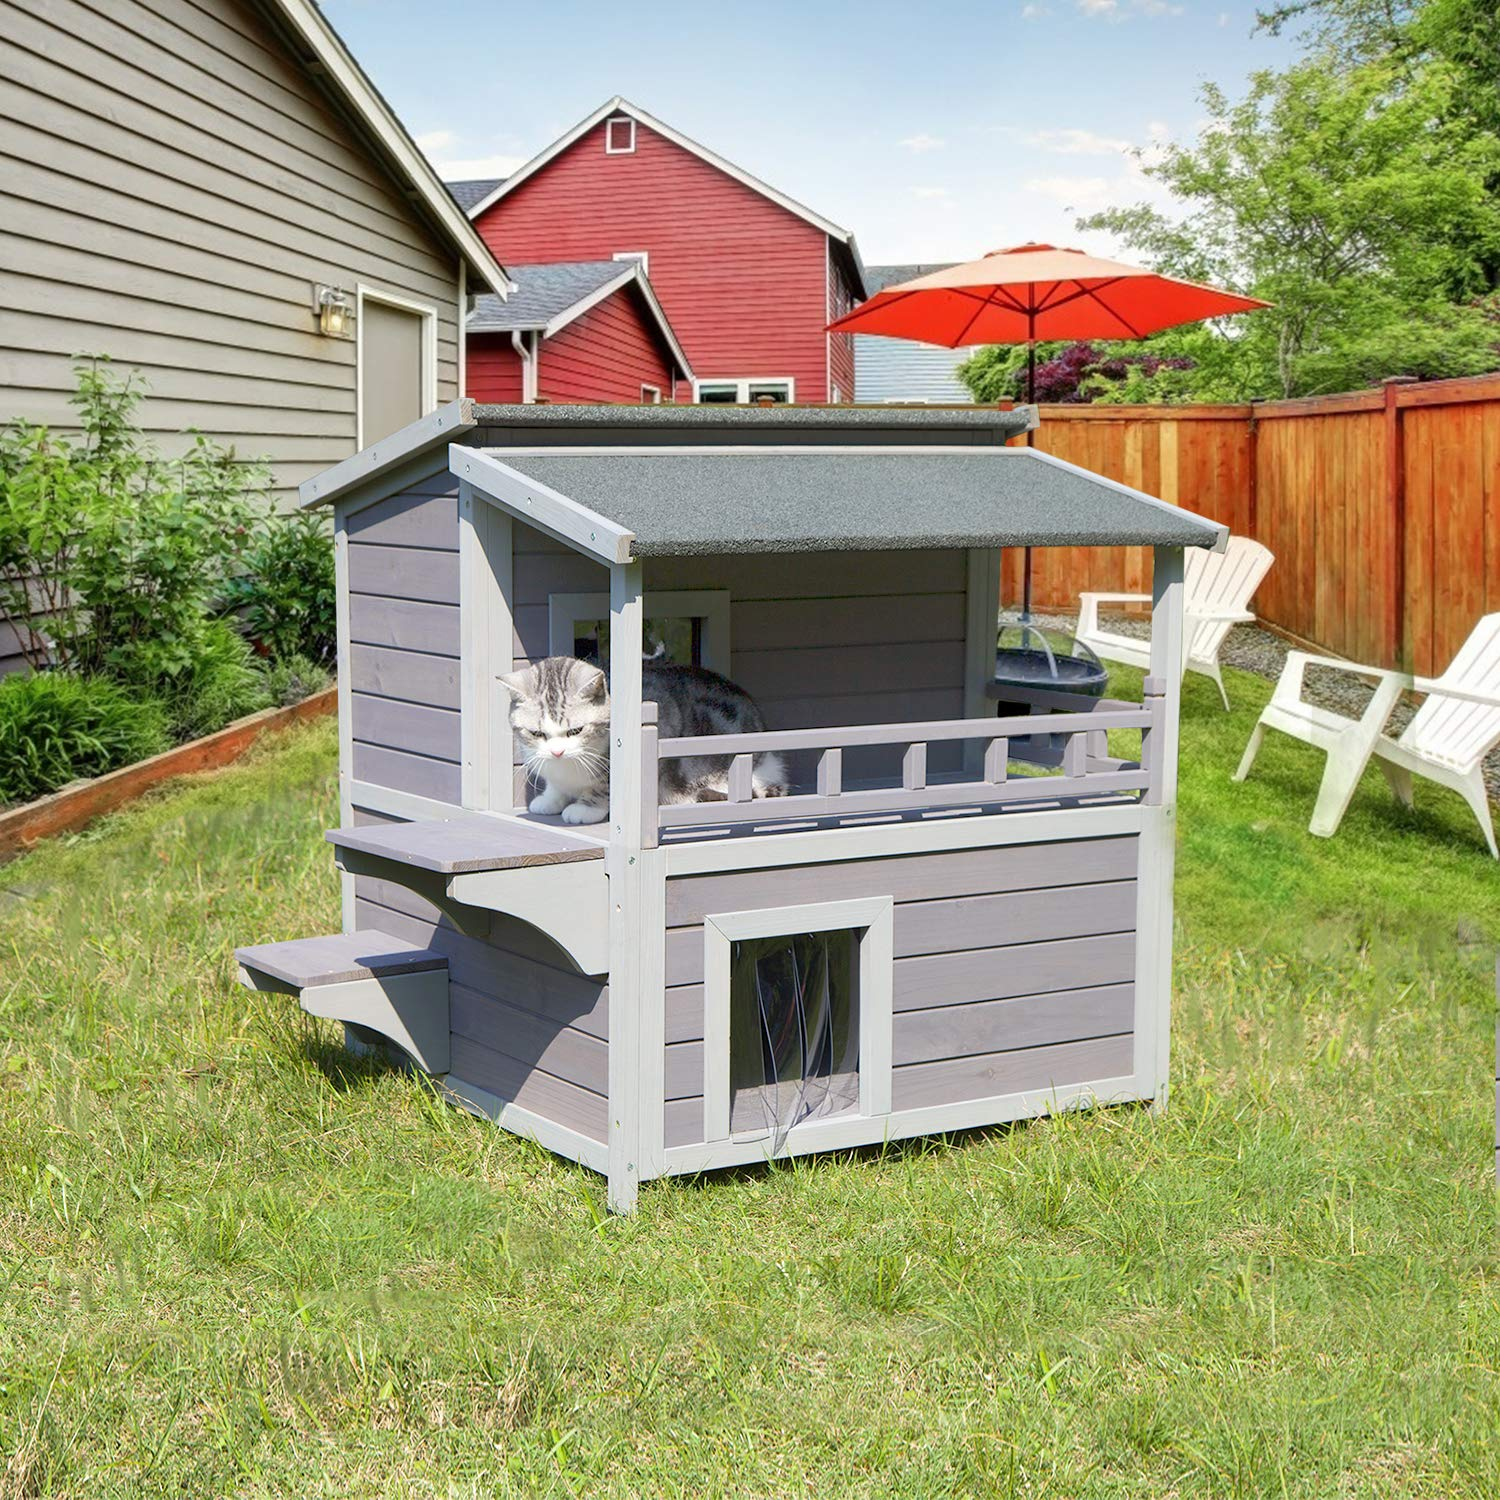 Aivituvin 2 Story Cat House Enclosure With Large Balcony Indoor Cat Condo Outdoor Cat Shelter Wooden Kitty Home With Pvc Door Strip Buy Online In Japan At Desertcart Jp Productid 209907008